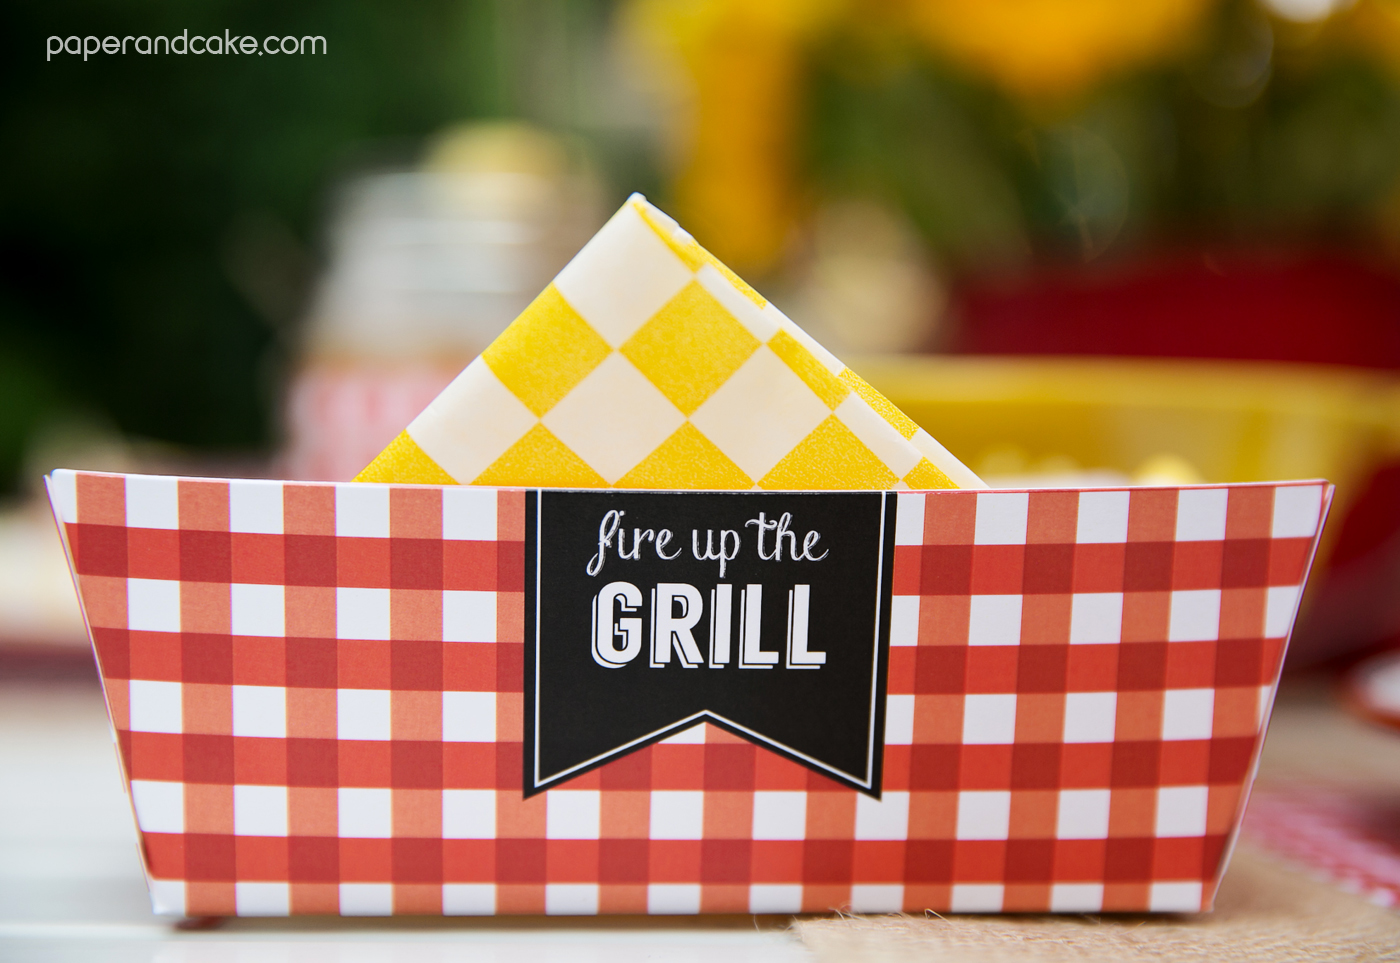 Bbq Printable Party Paper And Cake Paper And Cake